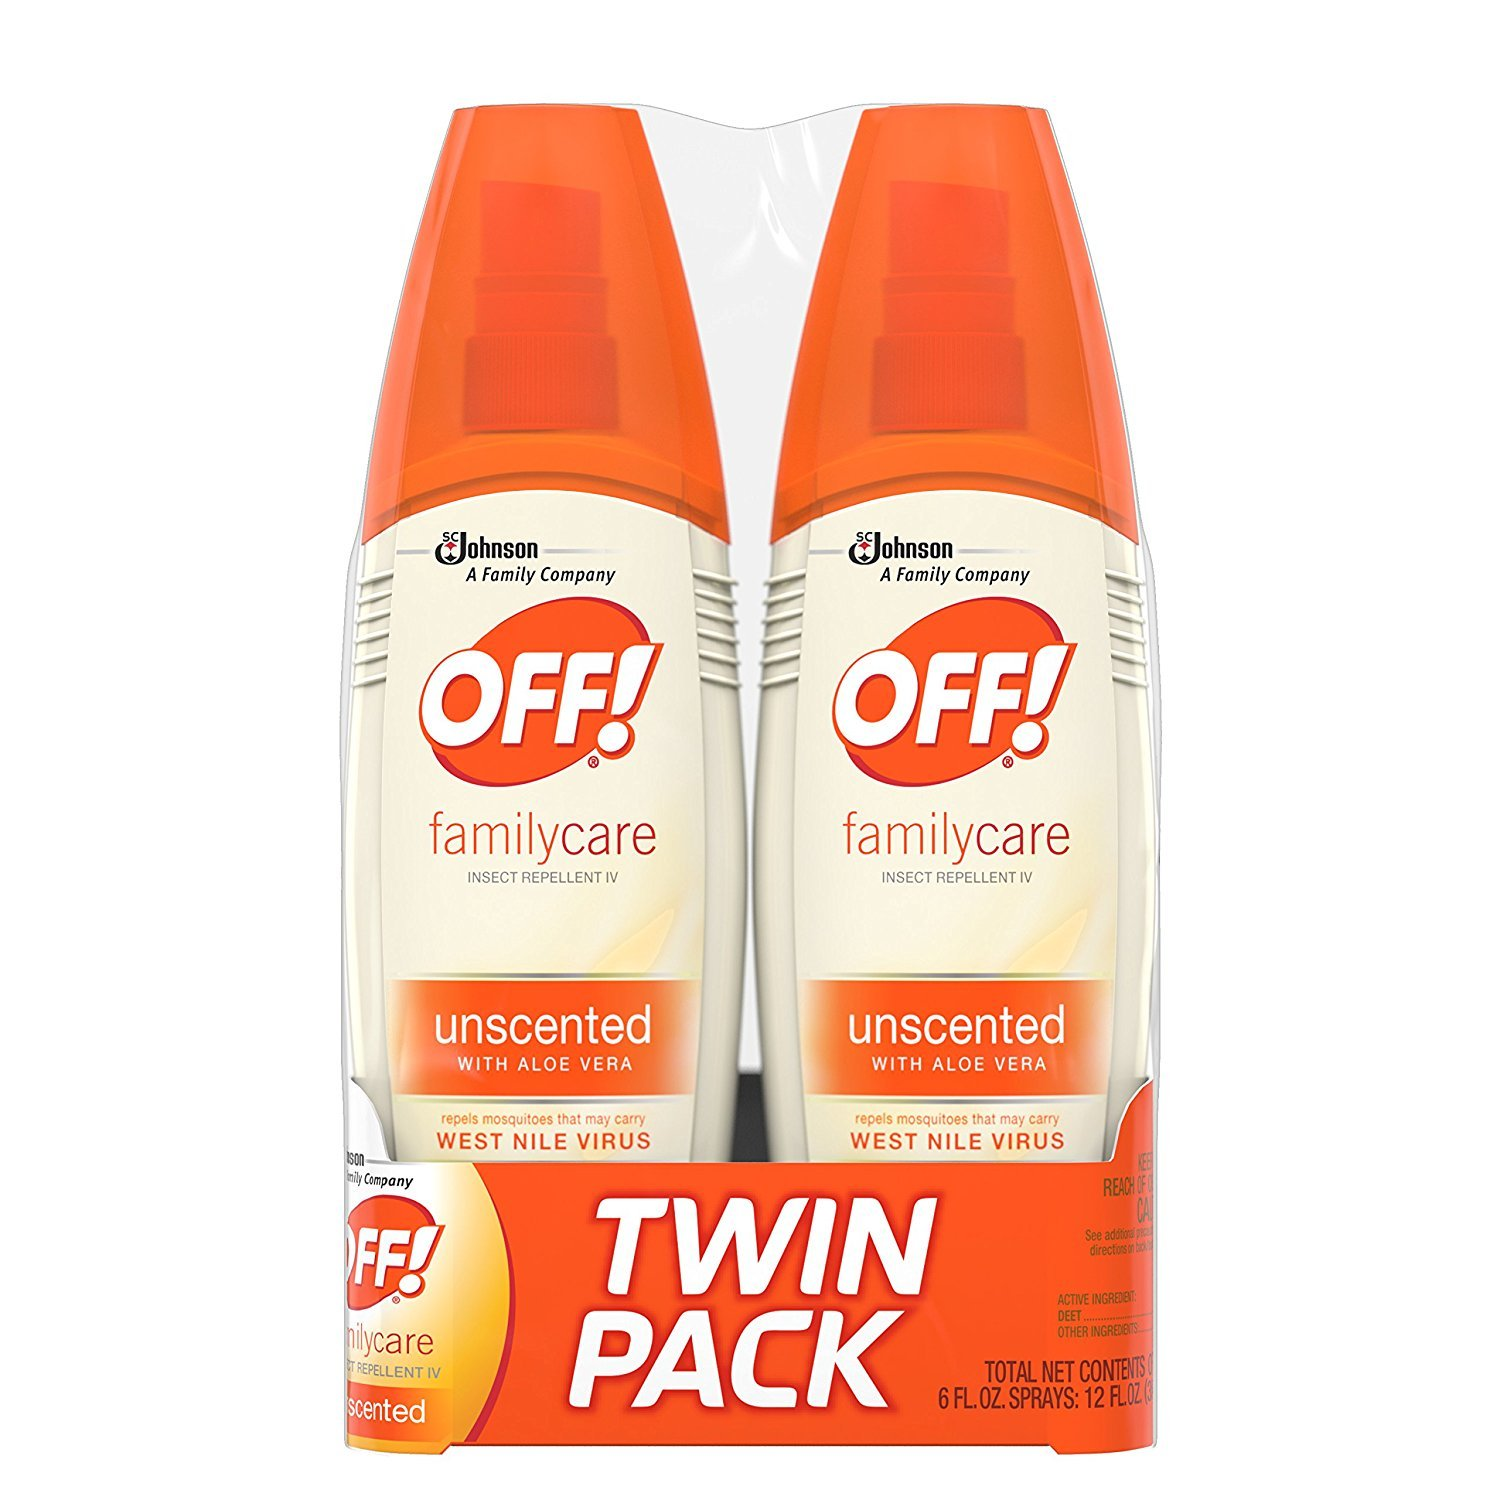 OFF! FamilyCare Insect Repellent IV Unscented, 6 oz, 6 ct